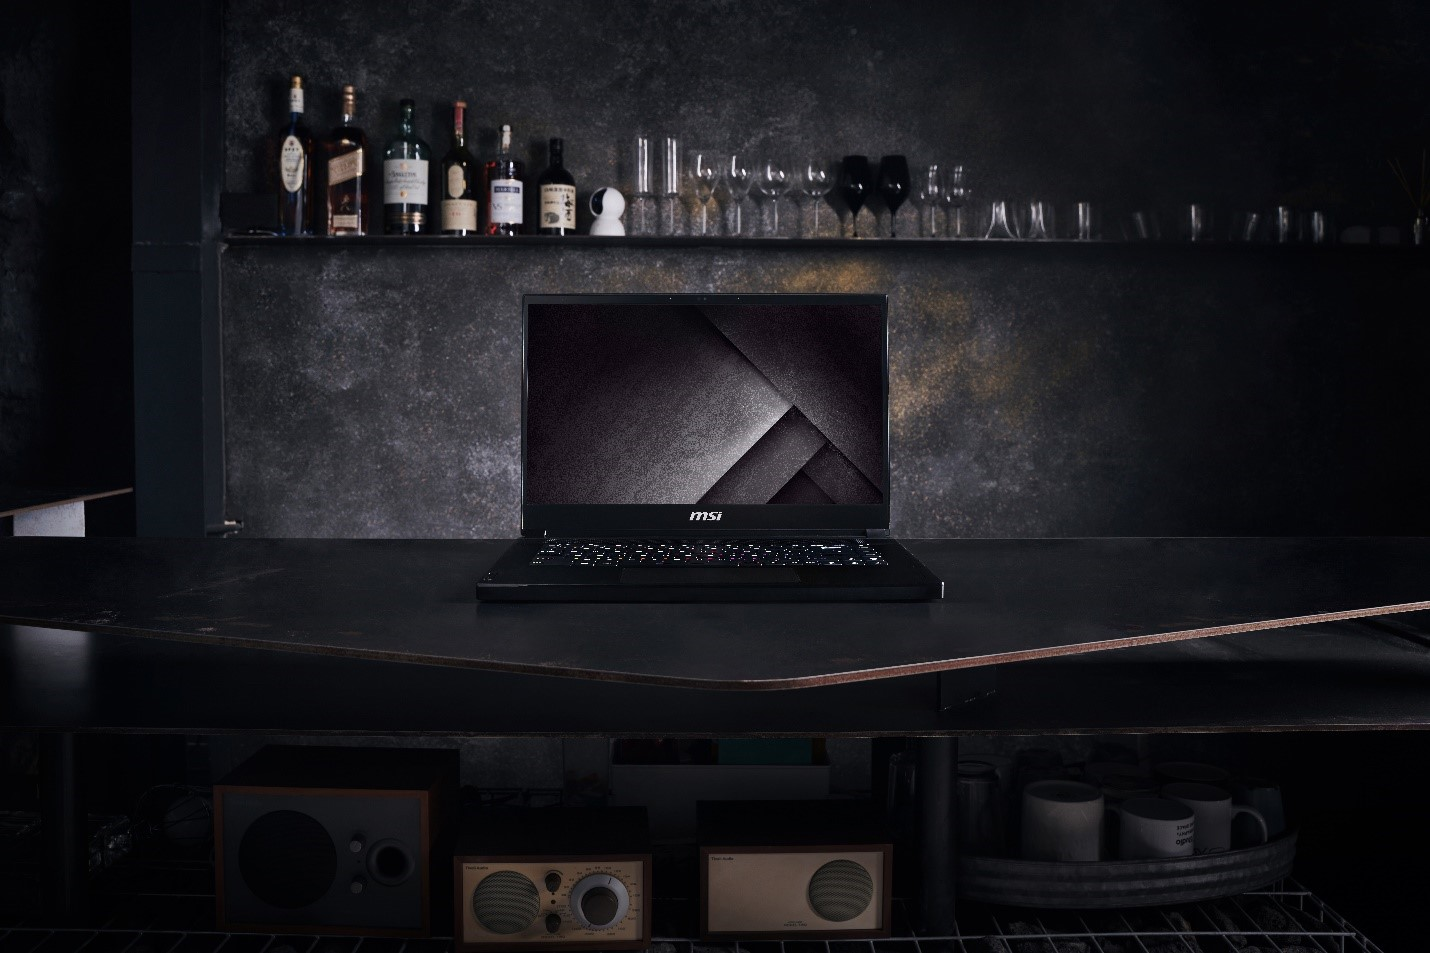 Reasons why you should consider the MSI GS66 Stealth as your next thin gaming laptop